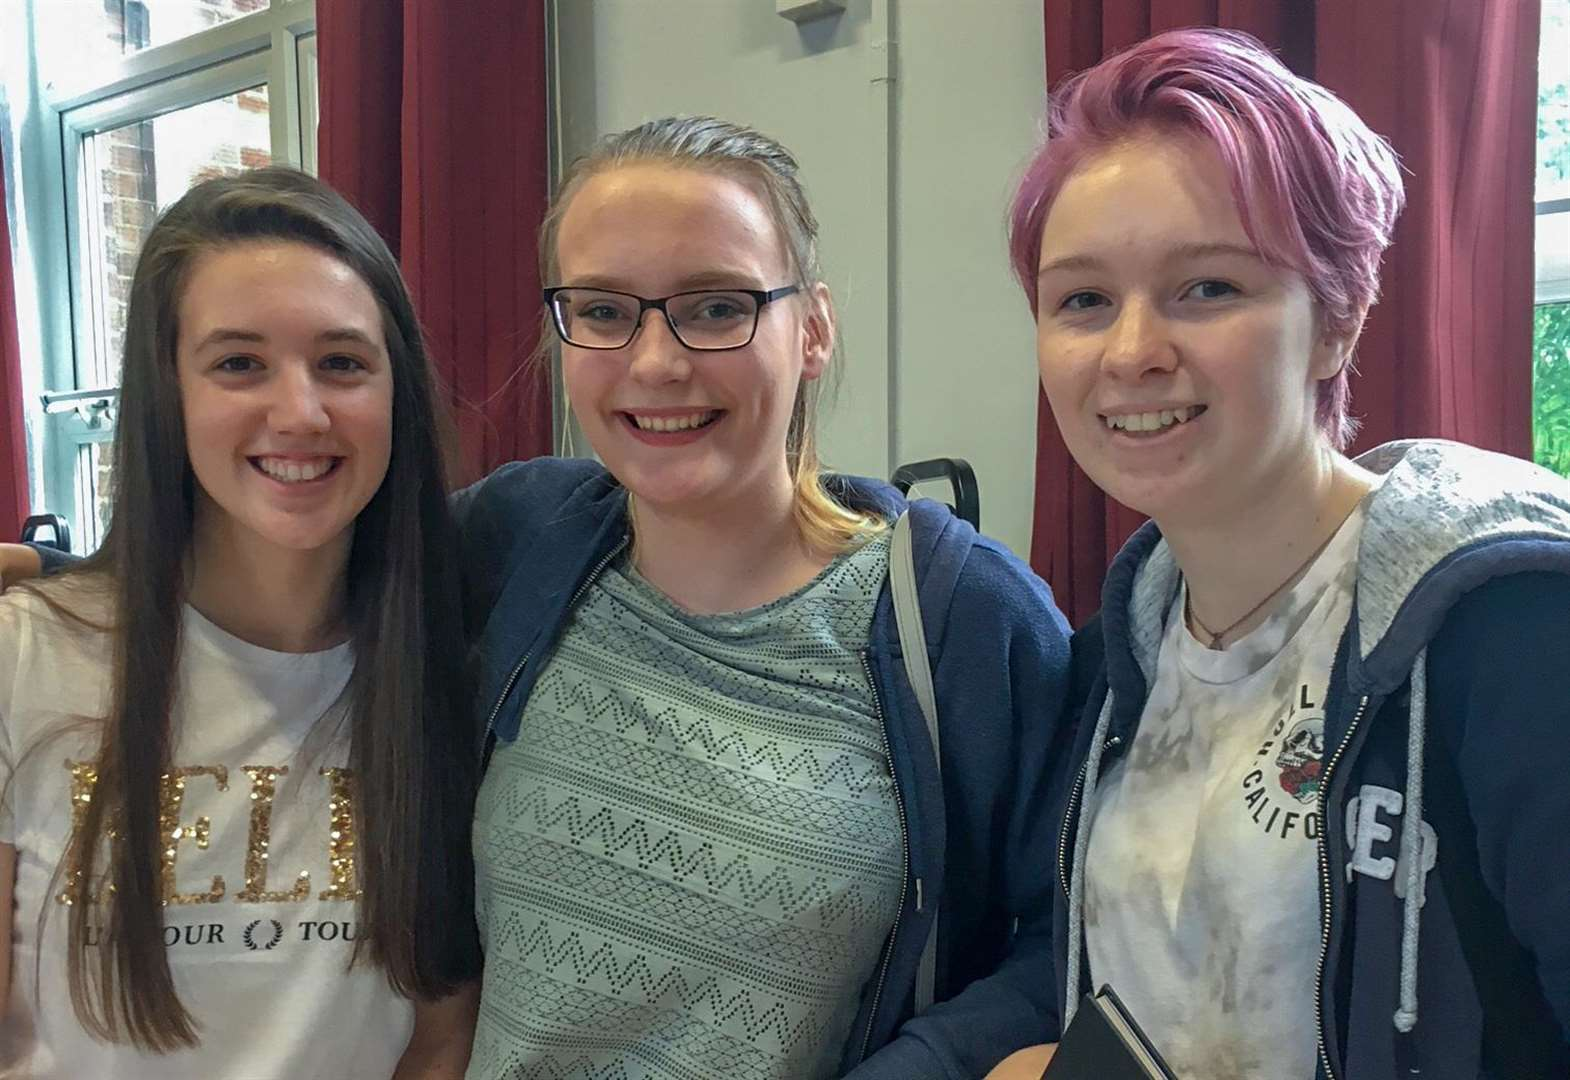 Science results are up at the Cromwell Community College in Chatteris